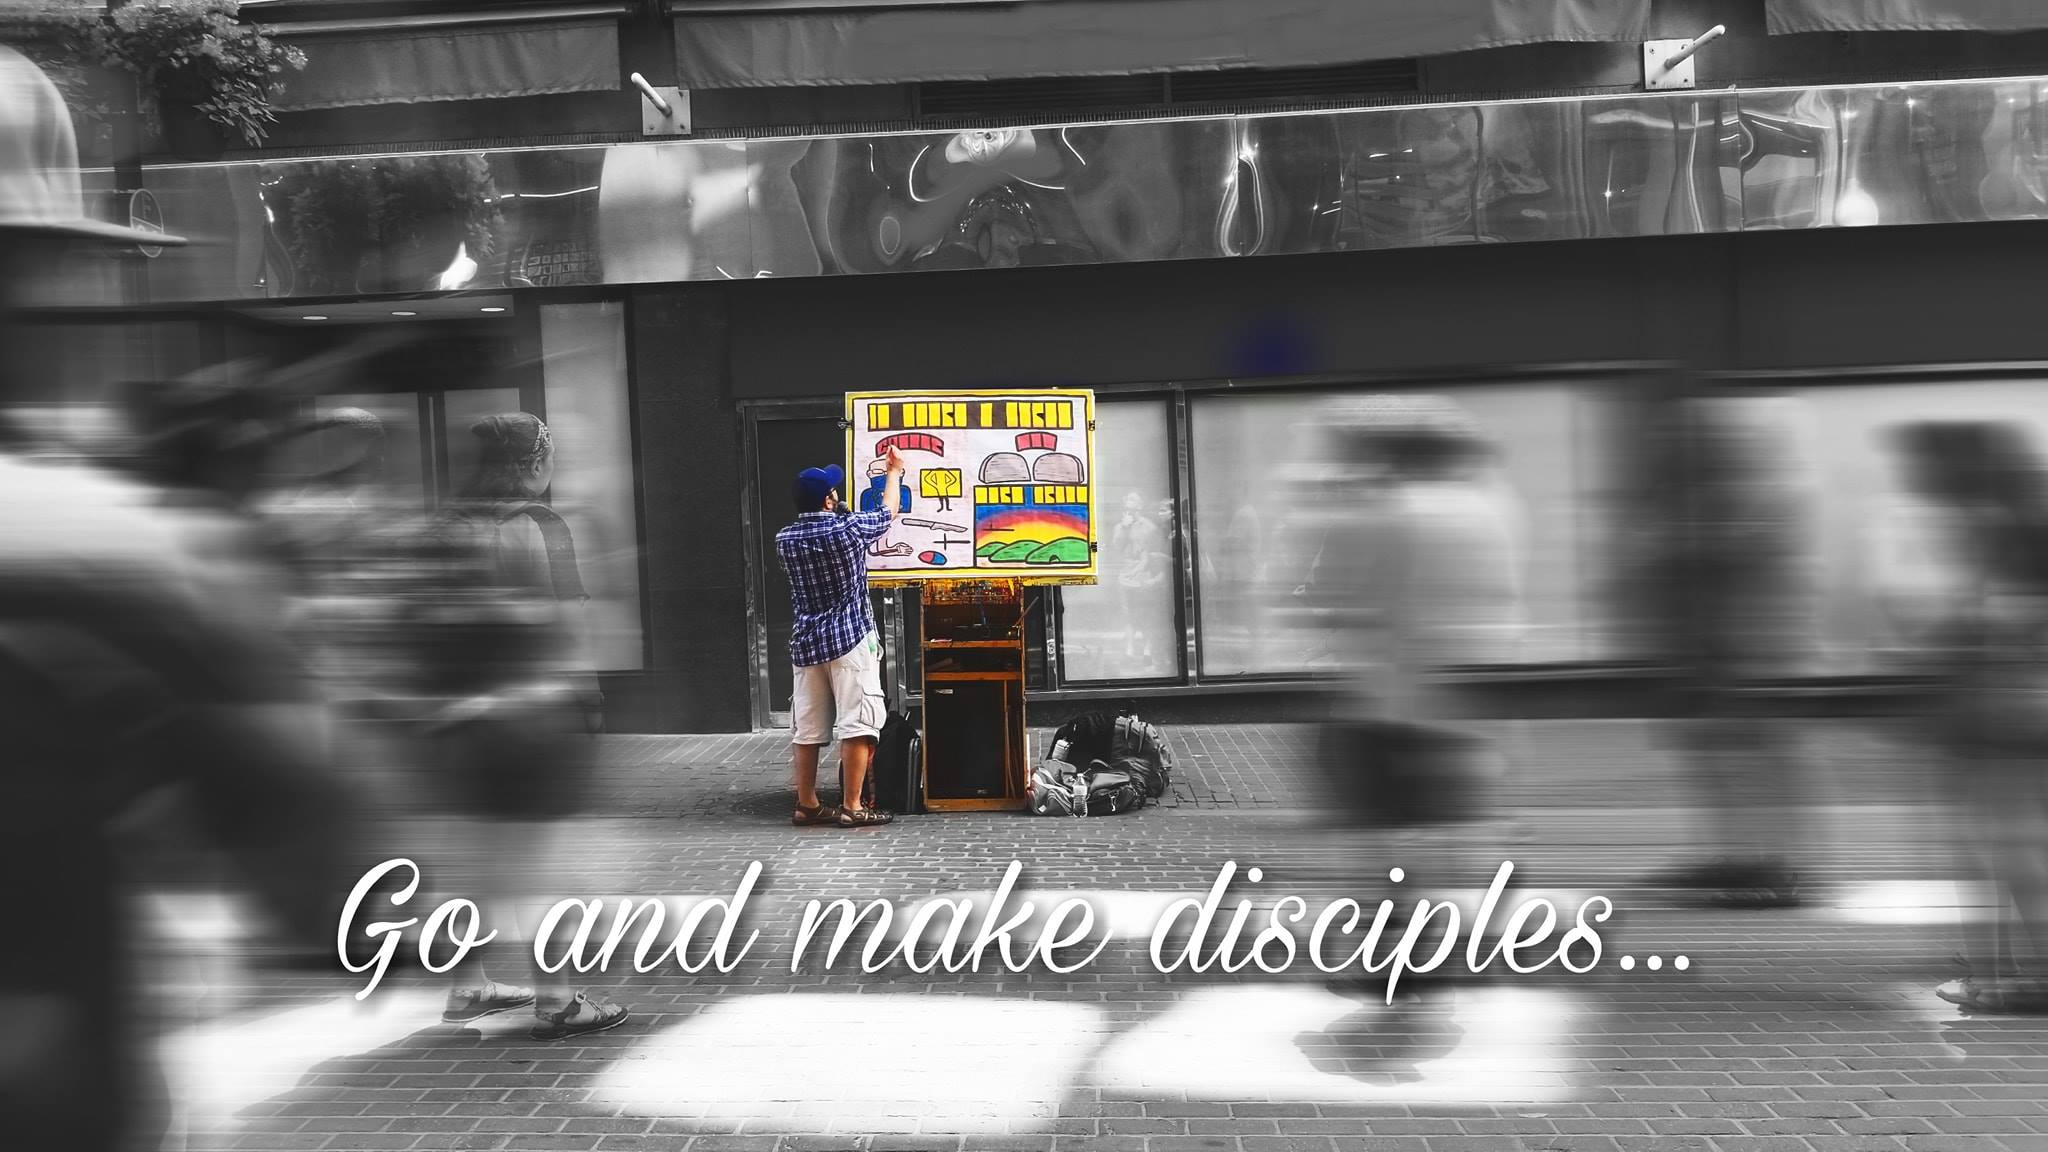 Juliana is very artsy. While I was preaching an Open Air message, she took this photo and edited it all fancy-smansy. I'm impressed by her editing skills! Praise God!